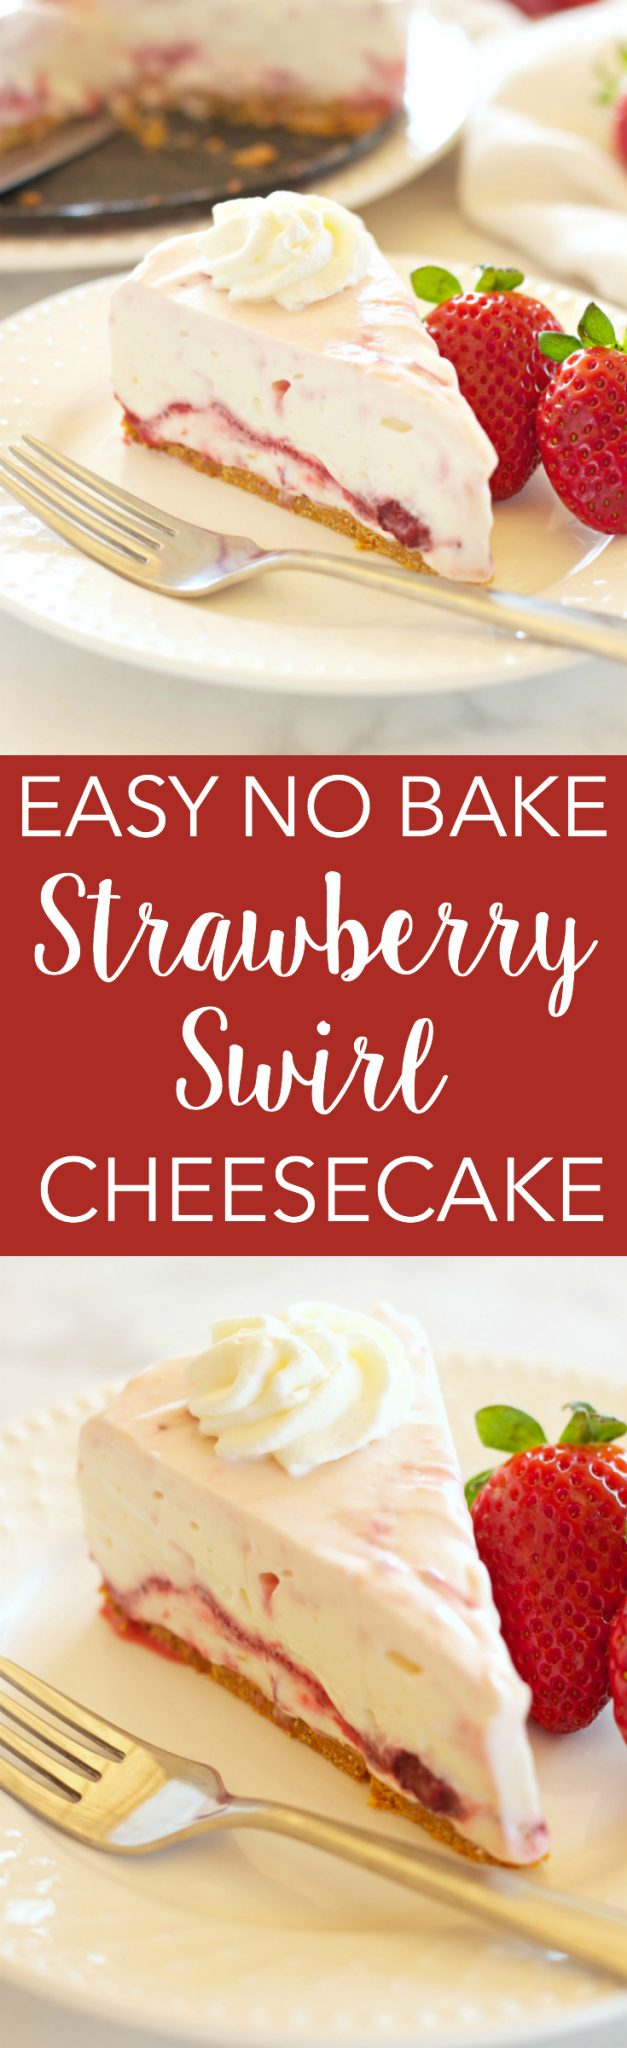 This Easy No Bake Strawberry Swirl Cheesecake is a delicious, easy to make, creamy and smooth dessert for spring and summer! And it's gelatin-free! Recipe from thebusybaker.ca! via @busybakerblog